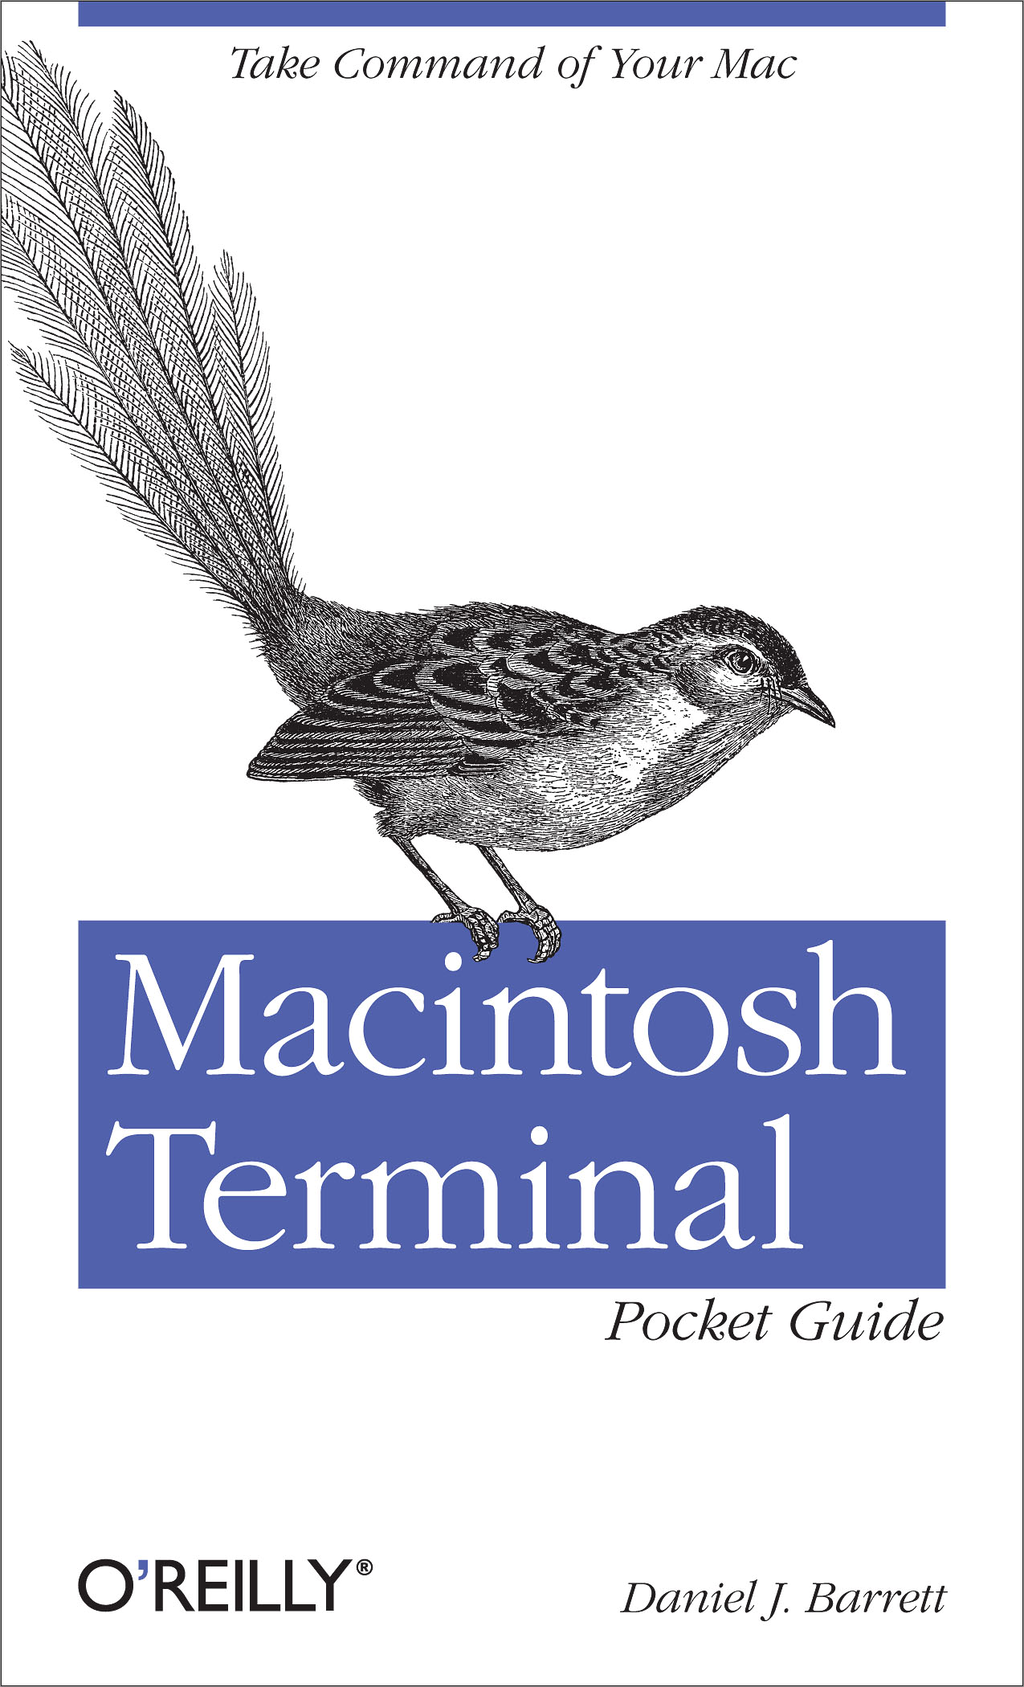 Macintosh Terminal Pocket Guide By: Daniel J. Barrett